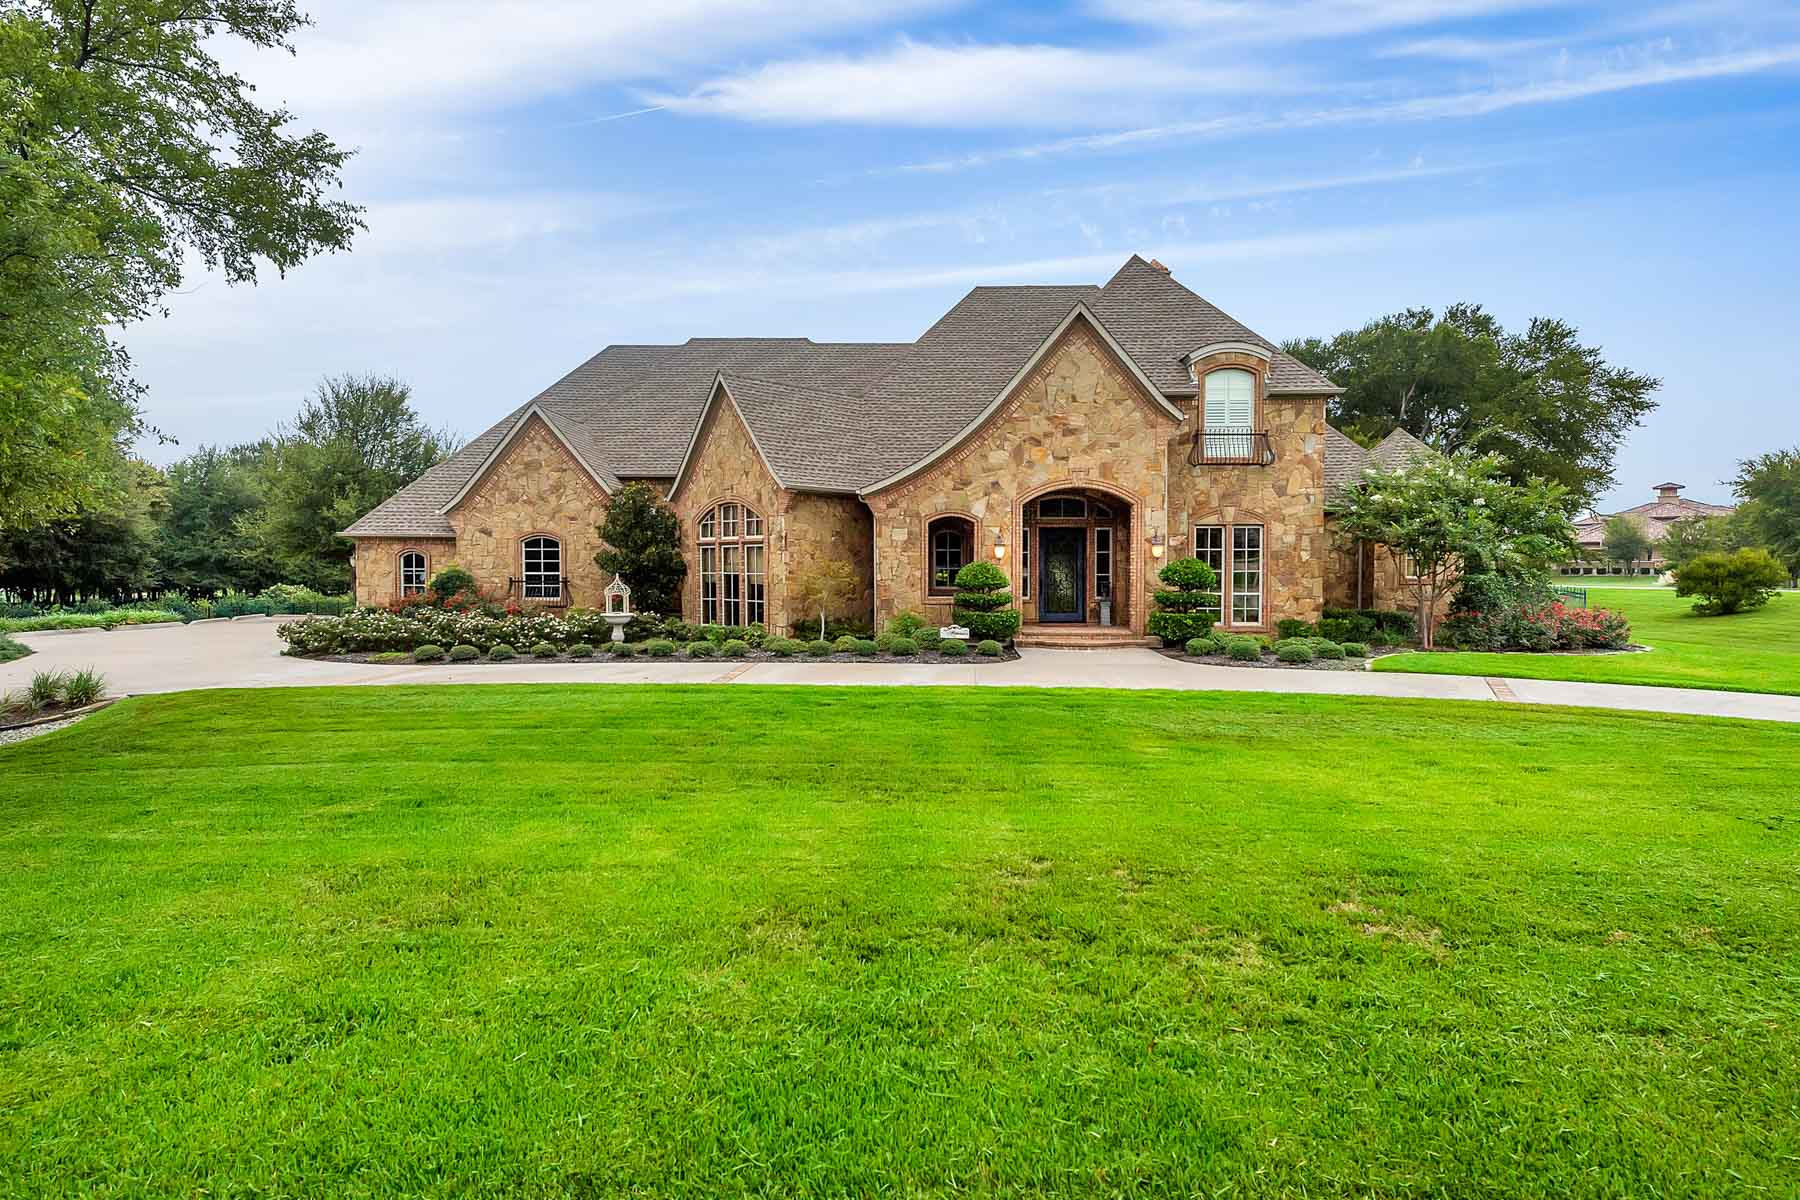 Villa per Vendita alle ore Bella Flora Traditional 8100 Modena Dr Fort Worth, Texas, 76126 Stati Uniti